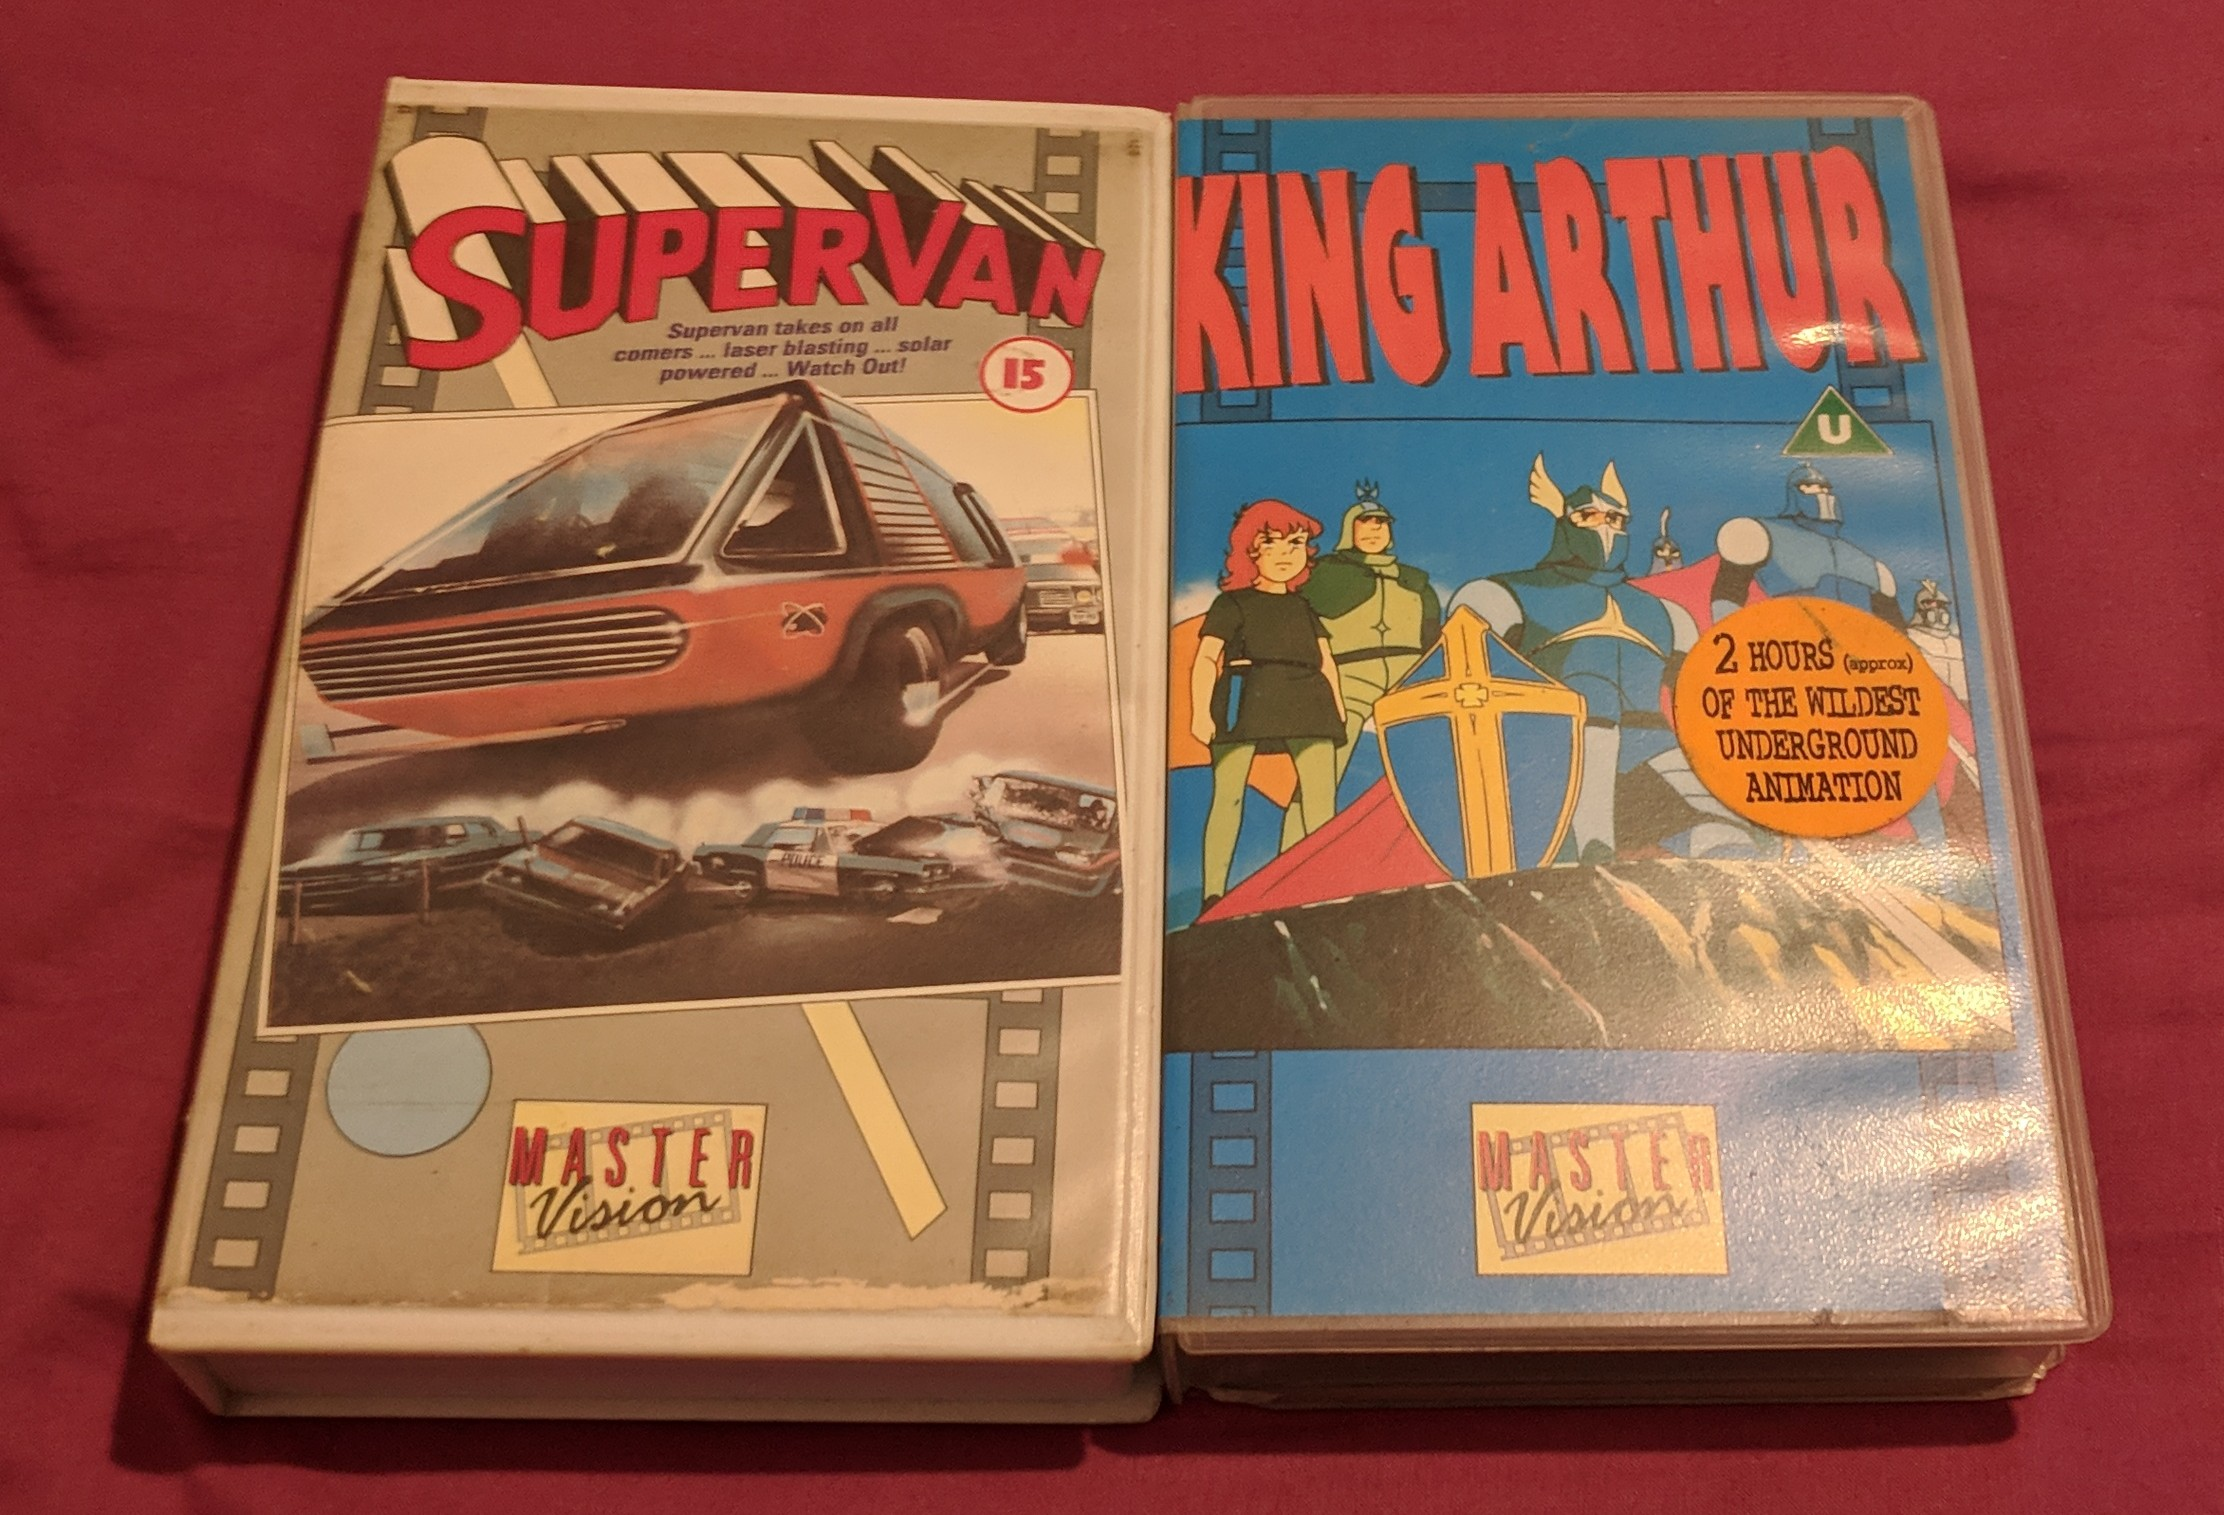 Mastervision - Supervan and King Arthur